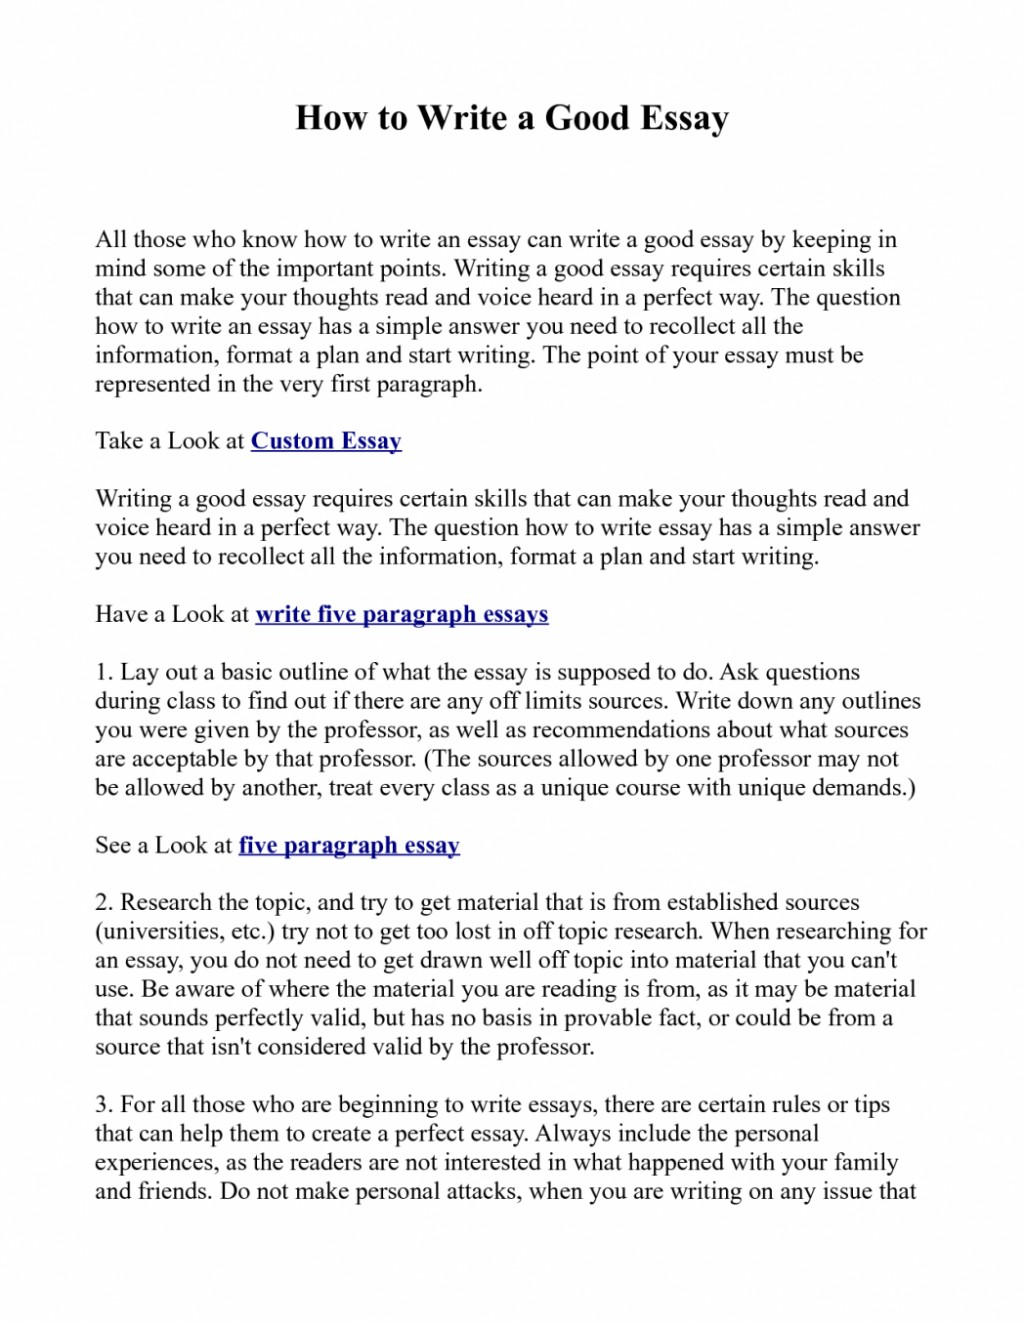 006 Write Essays How To An Excellent Essay The Perfect Easy Way Ex1id Best 1048x1356 Astounding A Poetry For Ap Lit About Yourself Paper In Spanish On Word Large